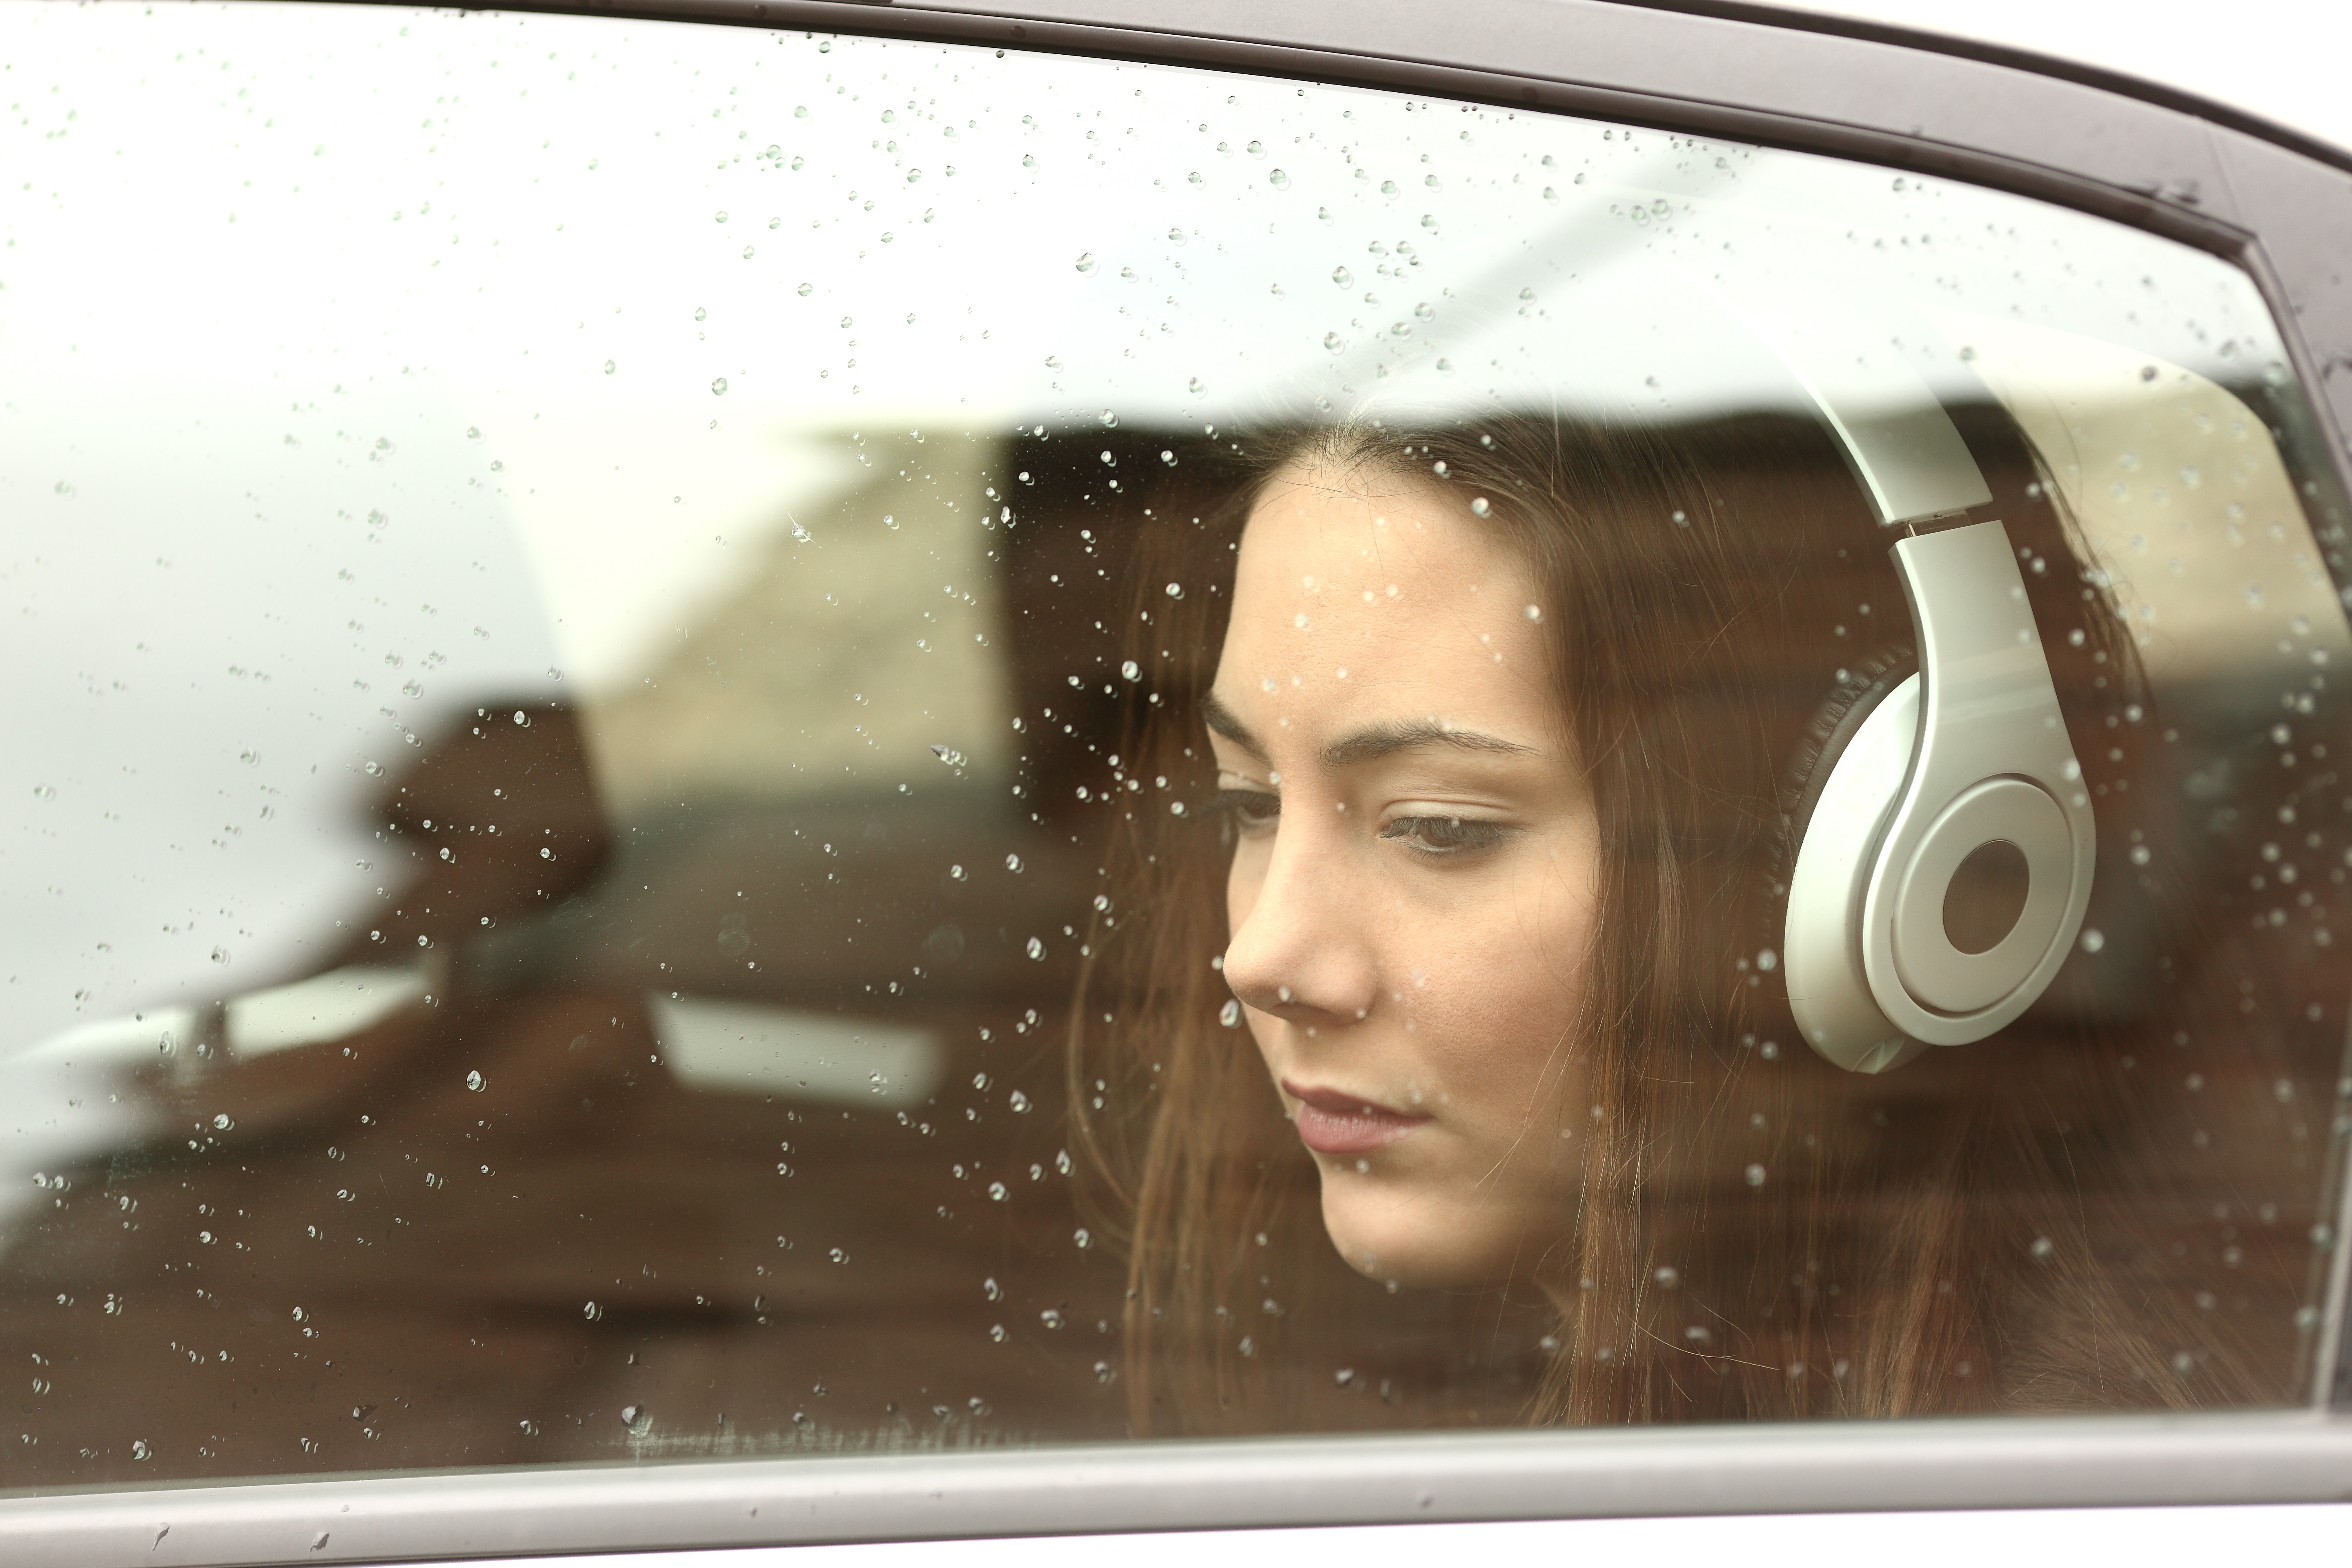 Sad teenager girl inside a car with headphones listening to the music